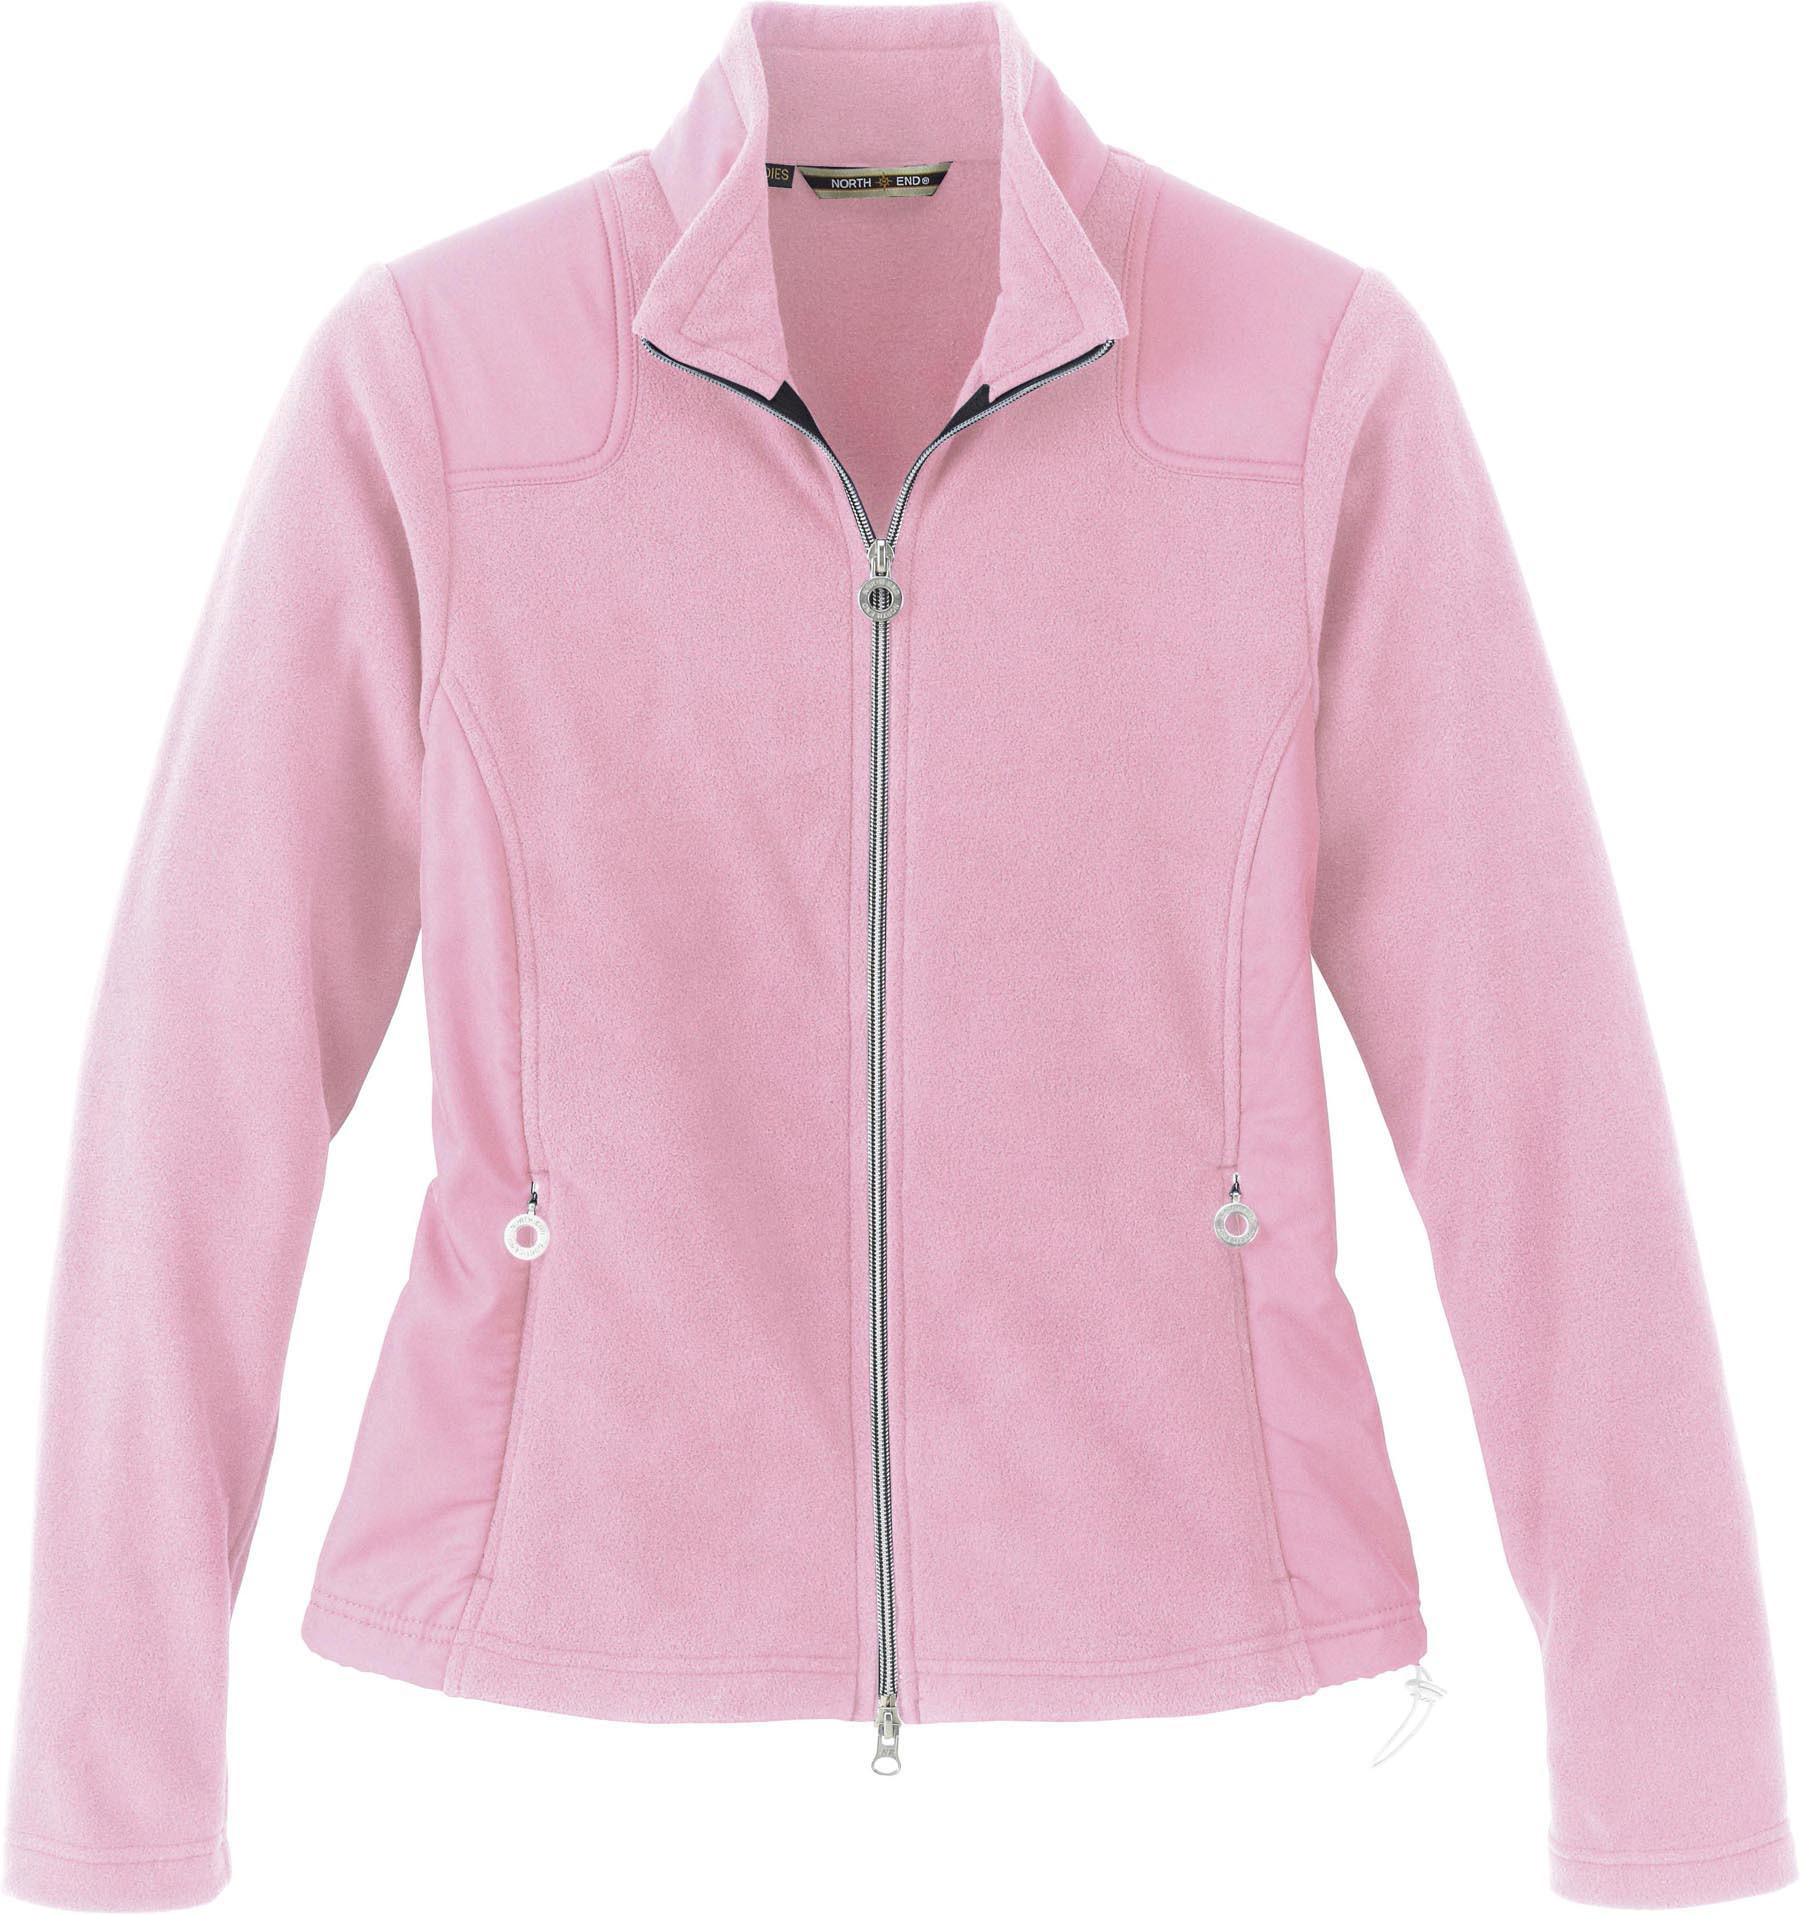 Ash City e.c.o Fleece 78064 - Ladies' Recycled Polyester ...